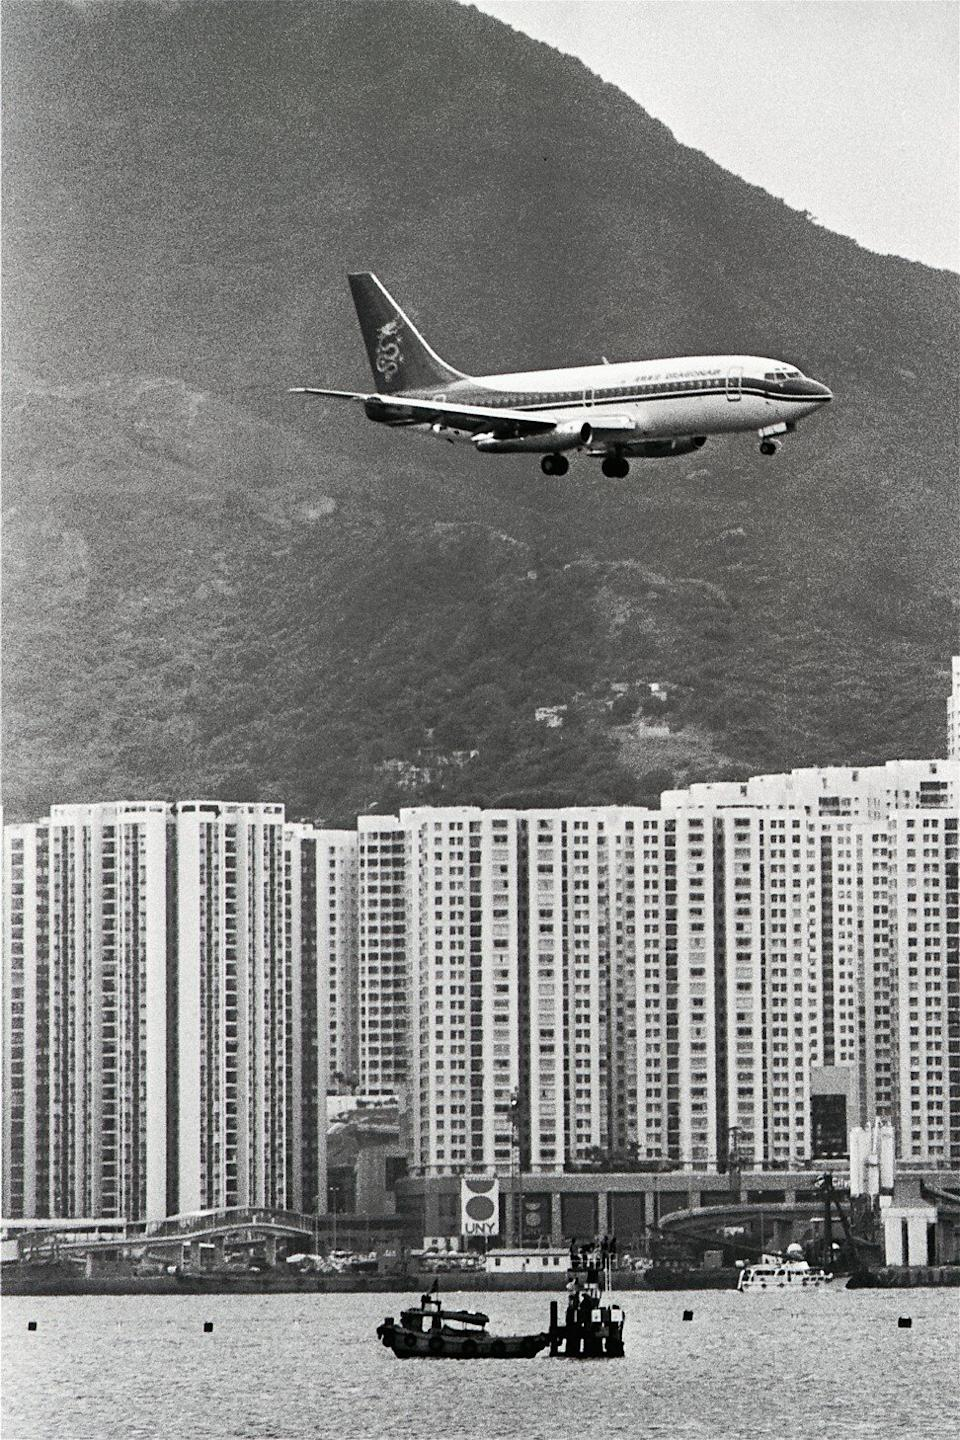 A Dragonair plane flies over Taikoo Shing in Hong Kong in 1988. Photo: SCMP